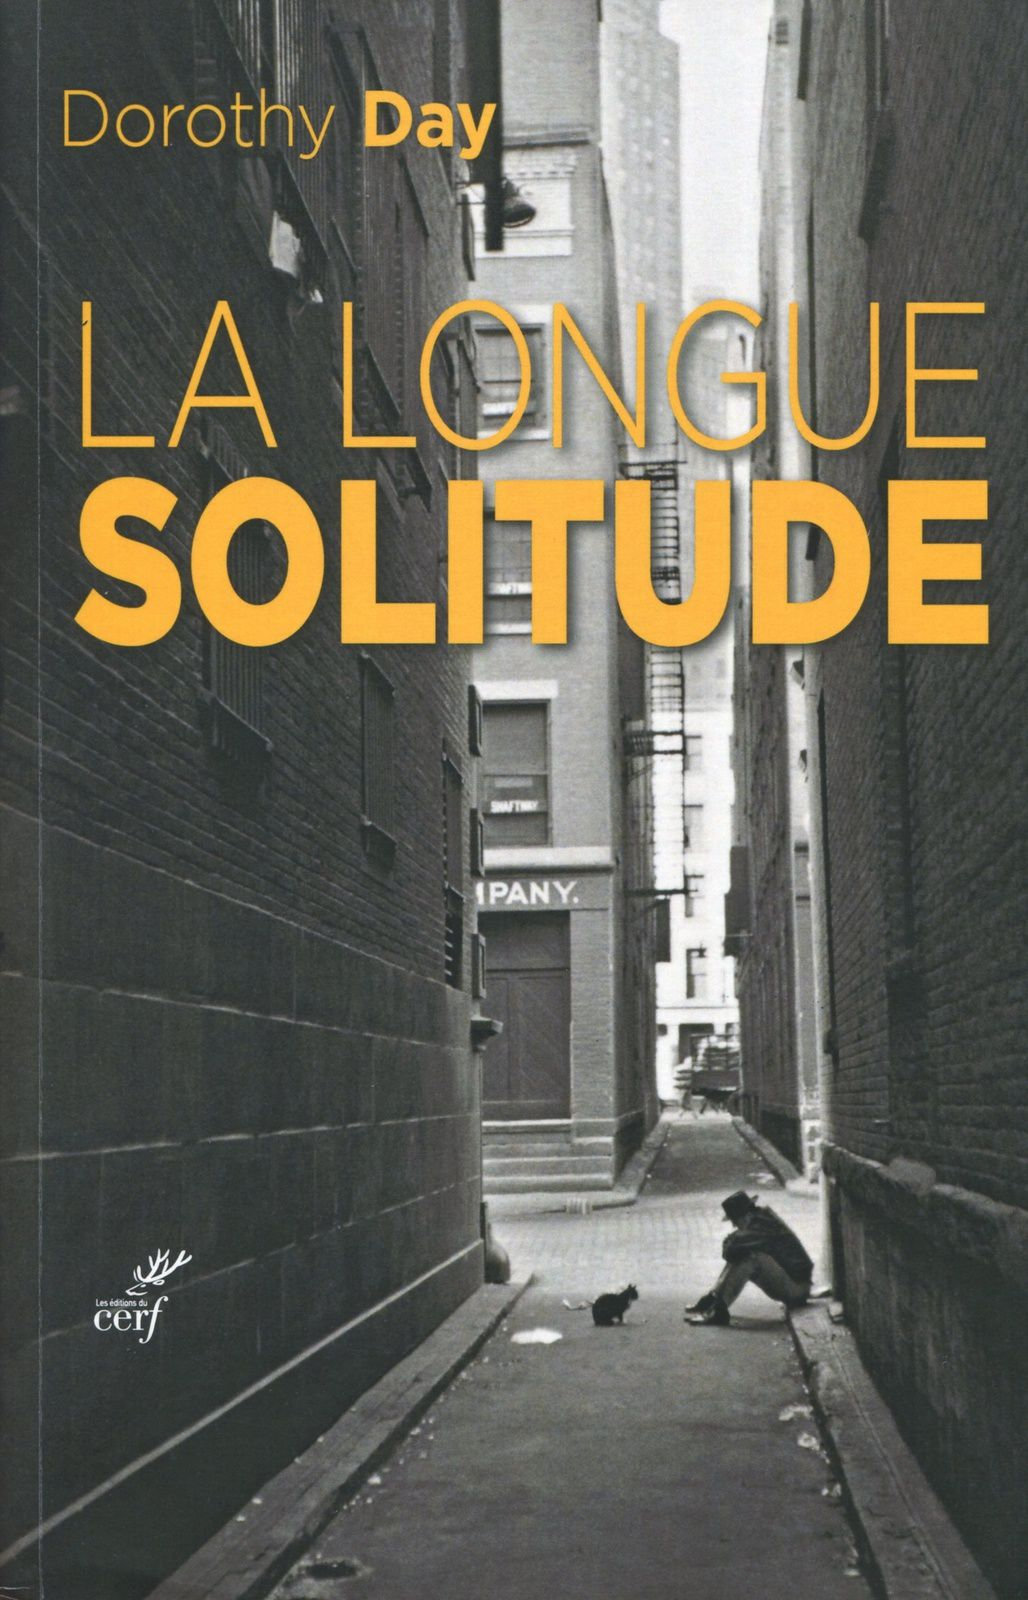 Dorothy Day, La longue solitude, Cerf, 428 p. 25 €